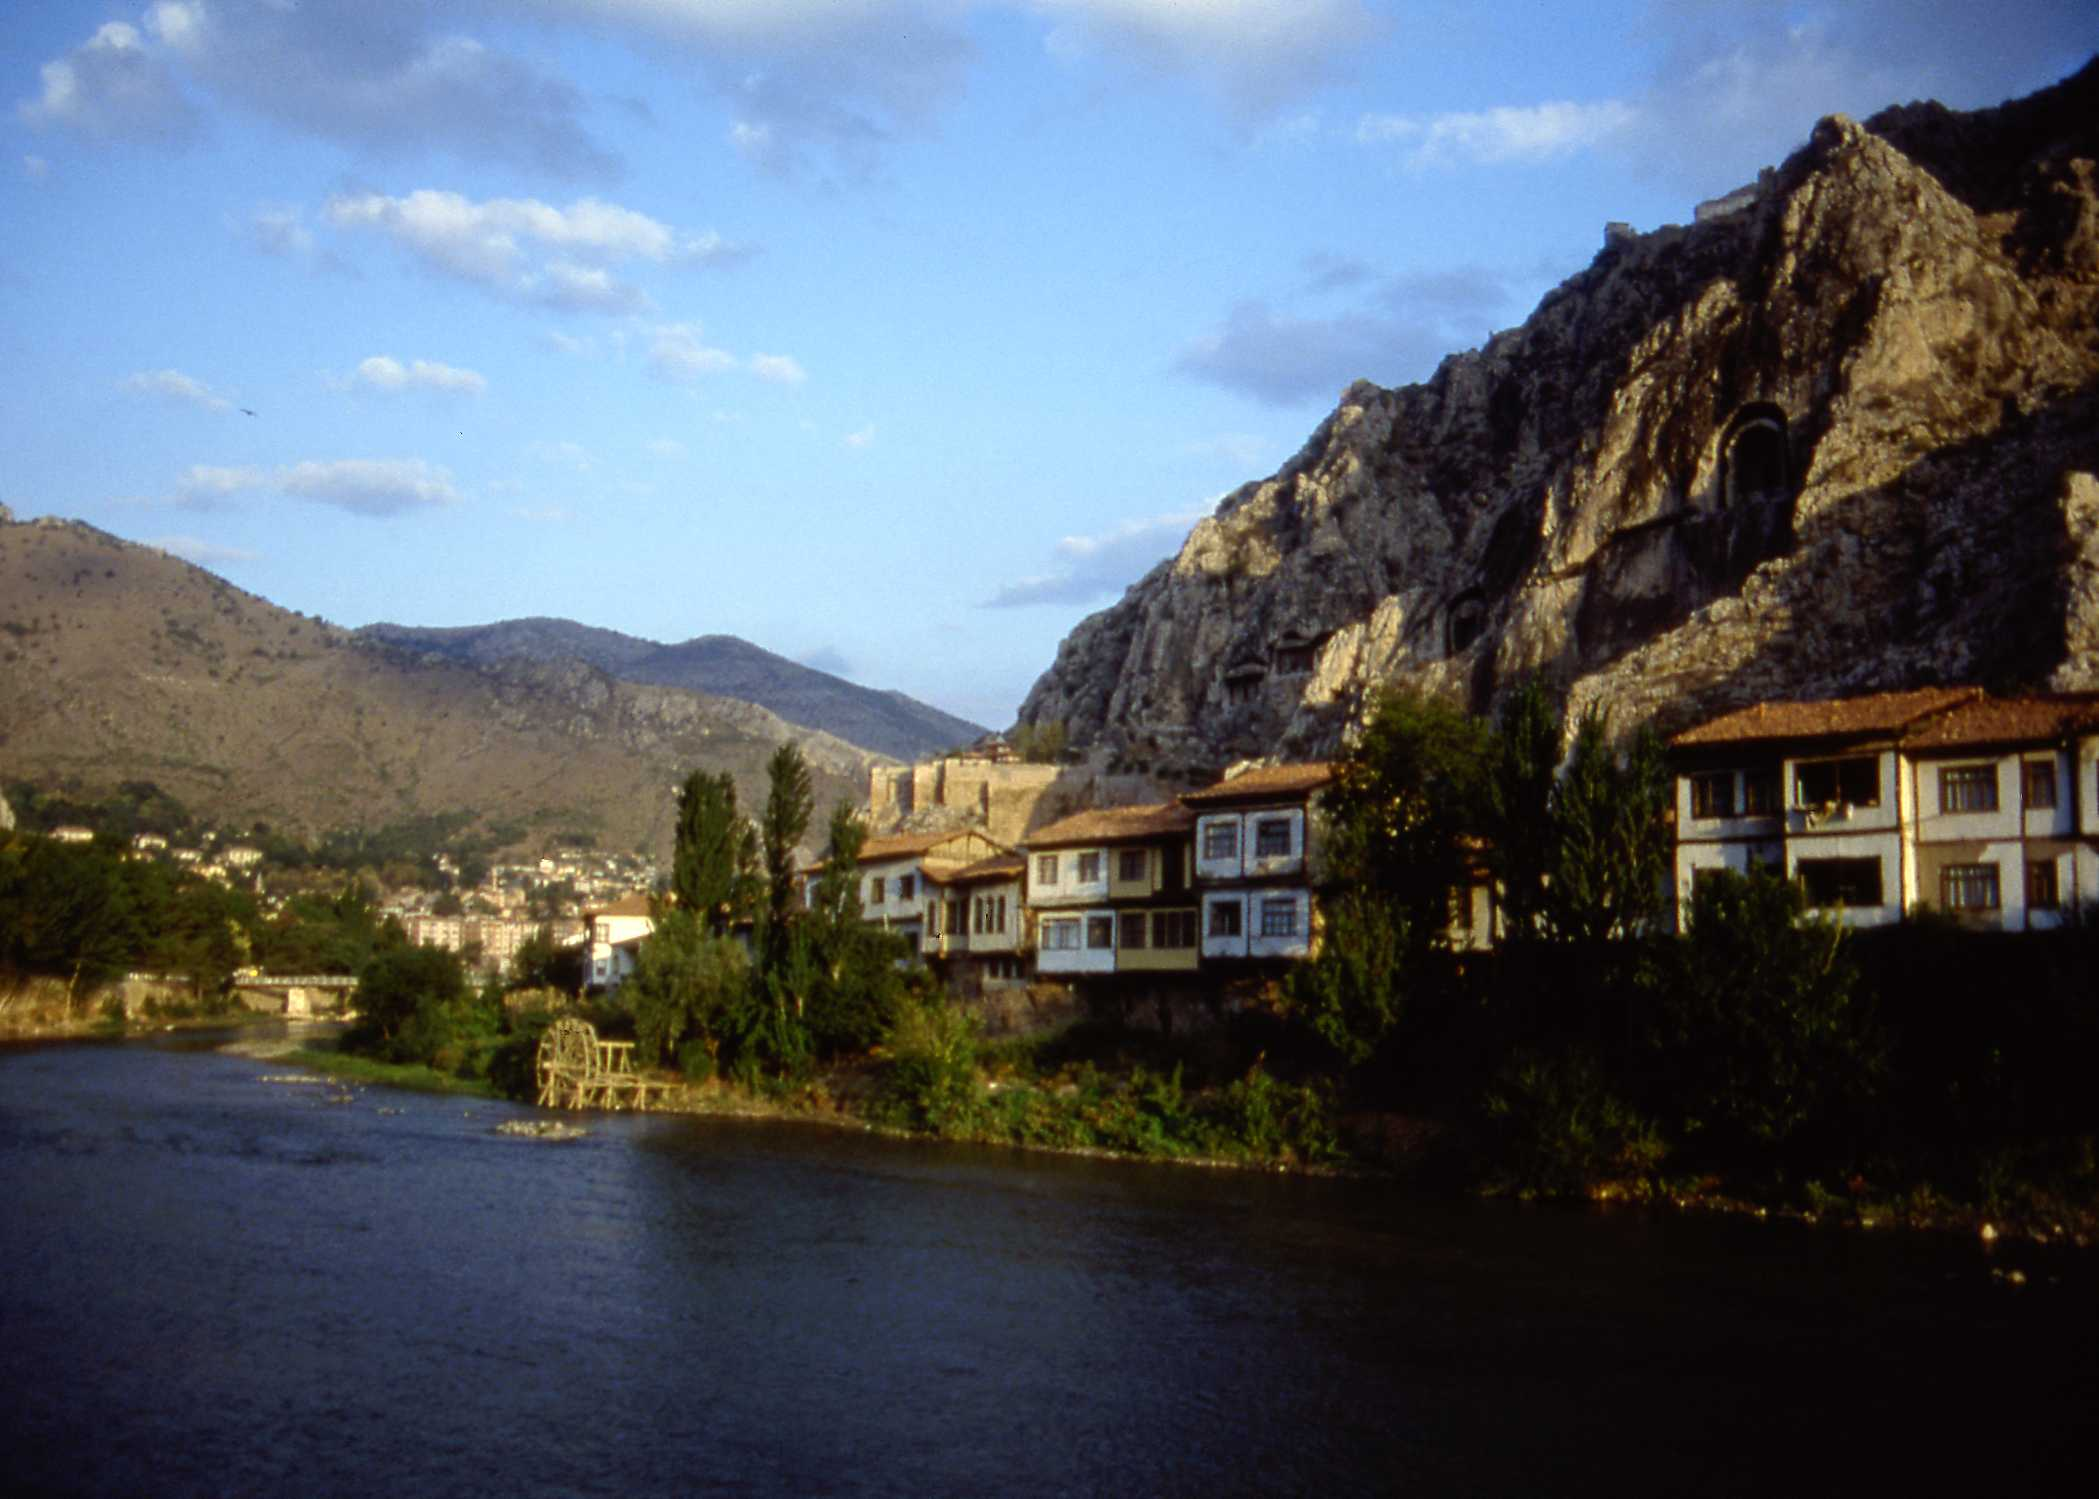 Amasya which has an early chapter in the story of the birth of the Turkish Republic.